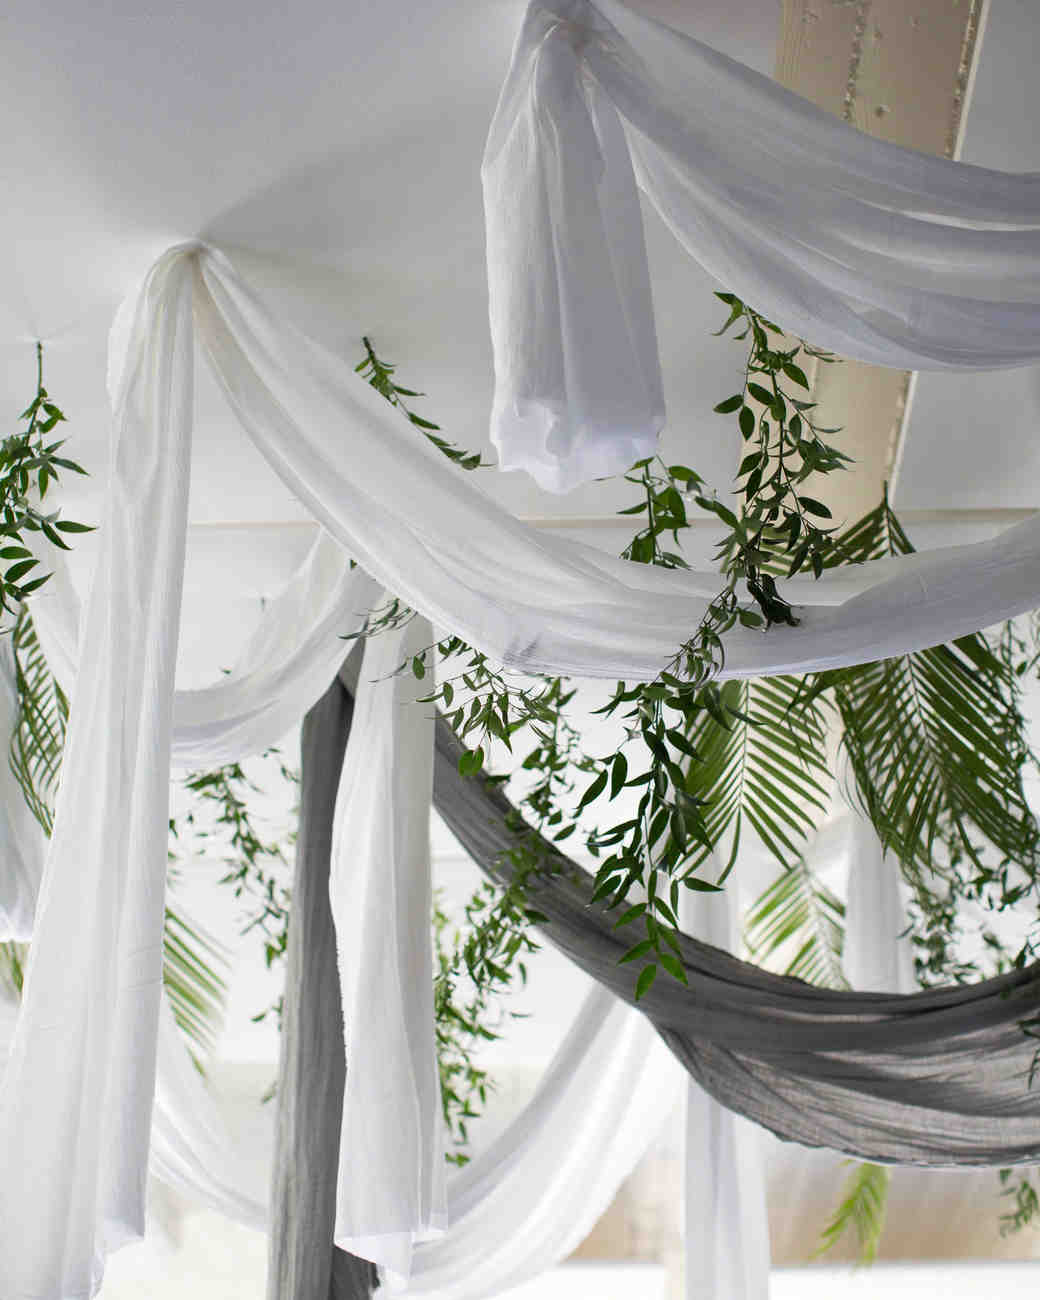 anne-ivan-wedding-california-draping-103180439_vert.jpg